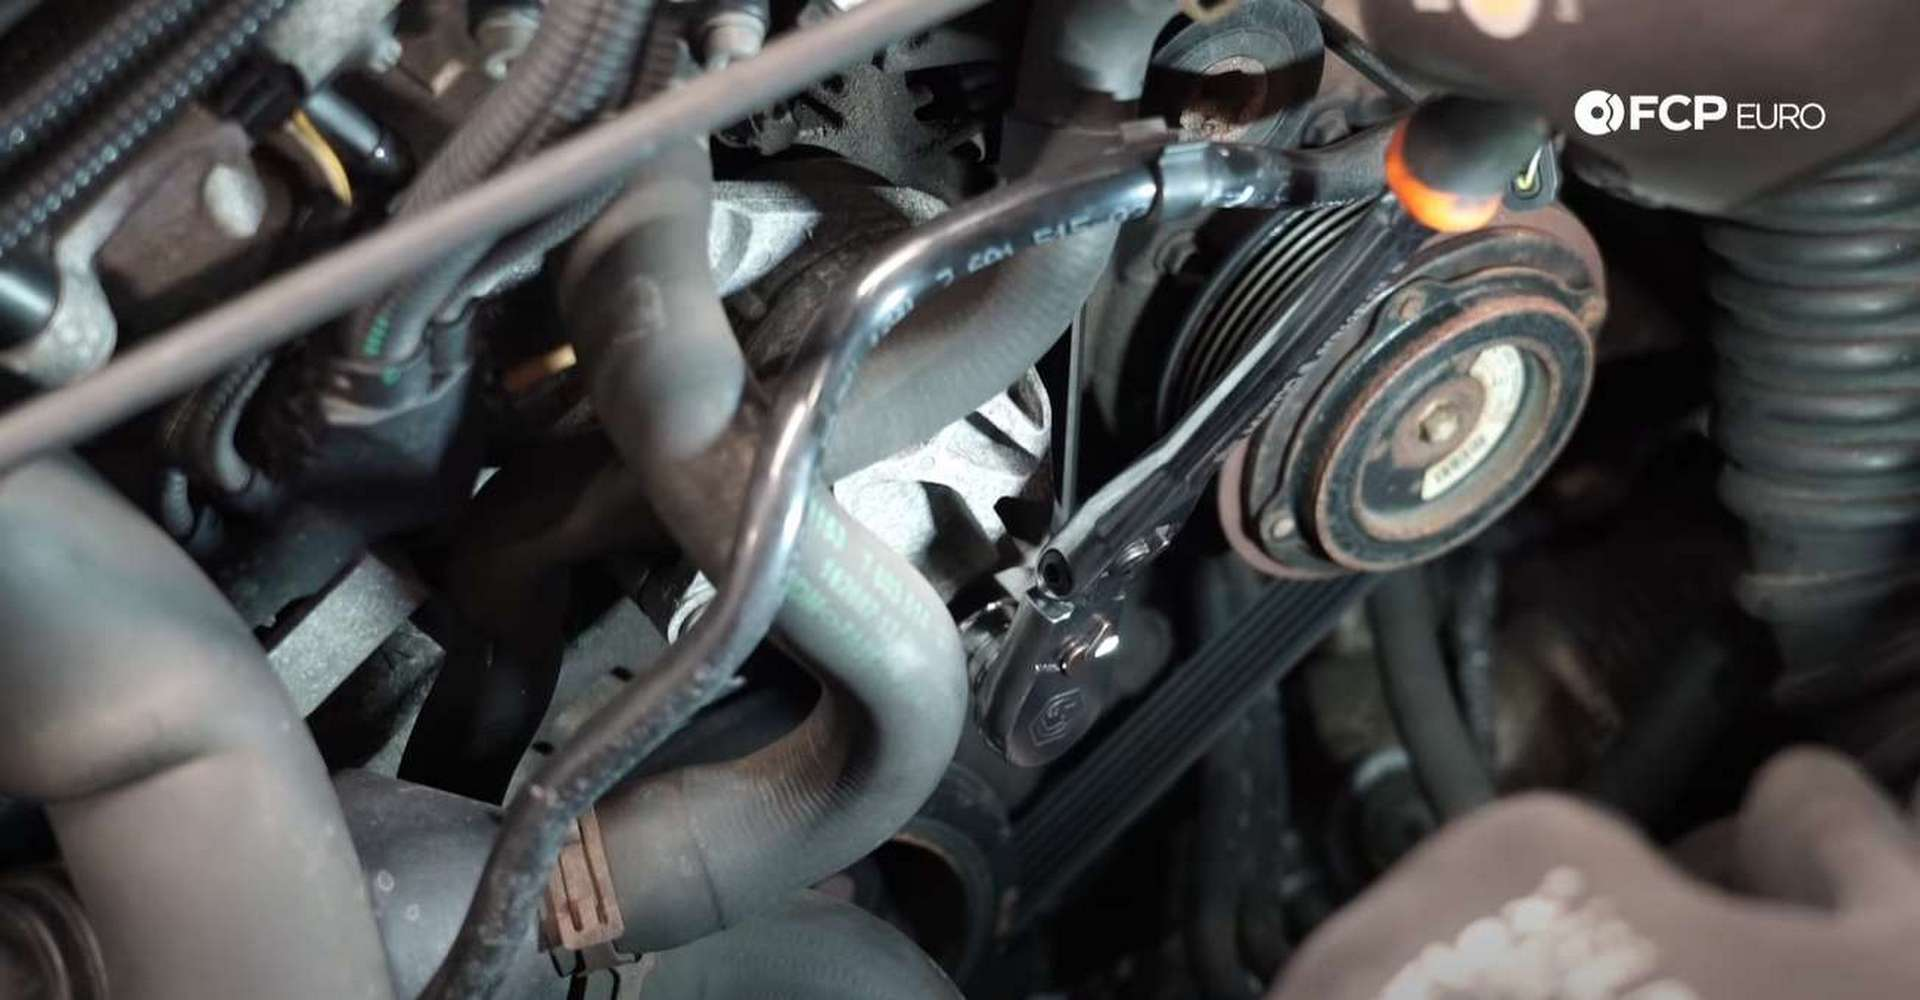 DIY BMW F30 Serpentine Belt Replacement rotating the tensioner